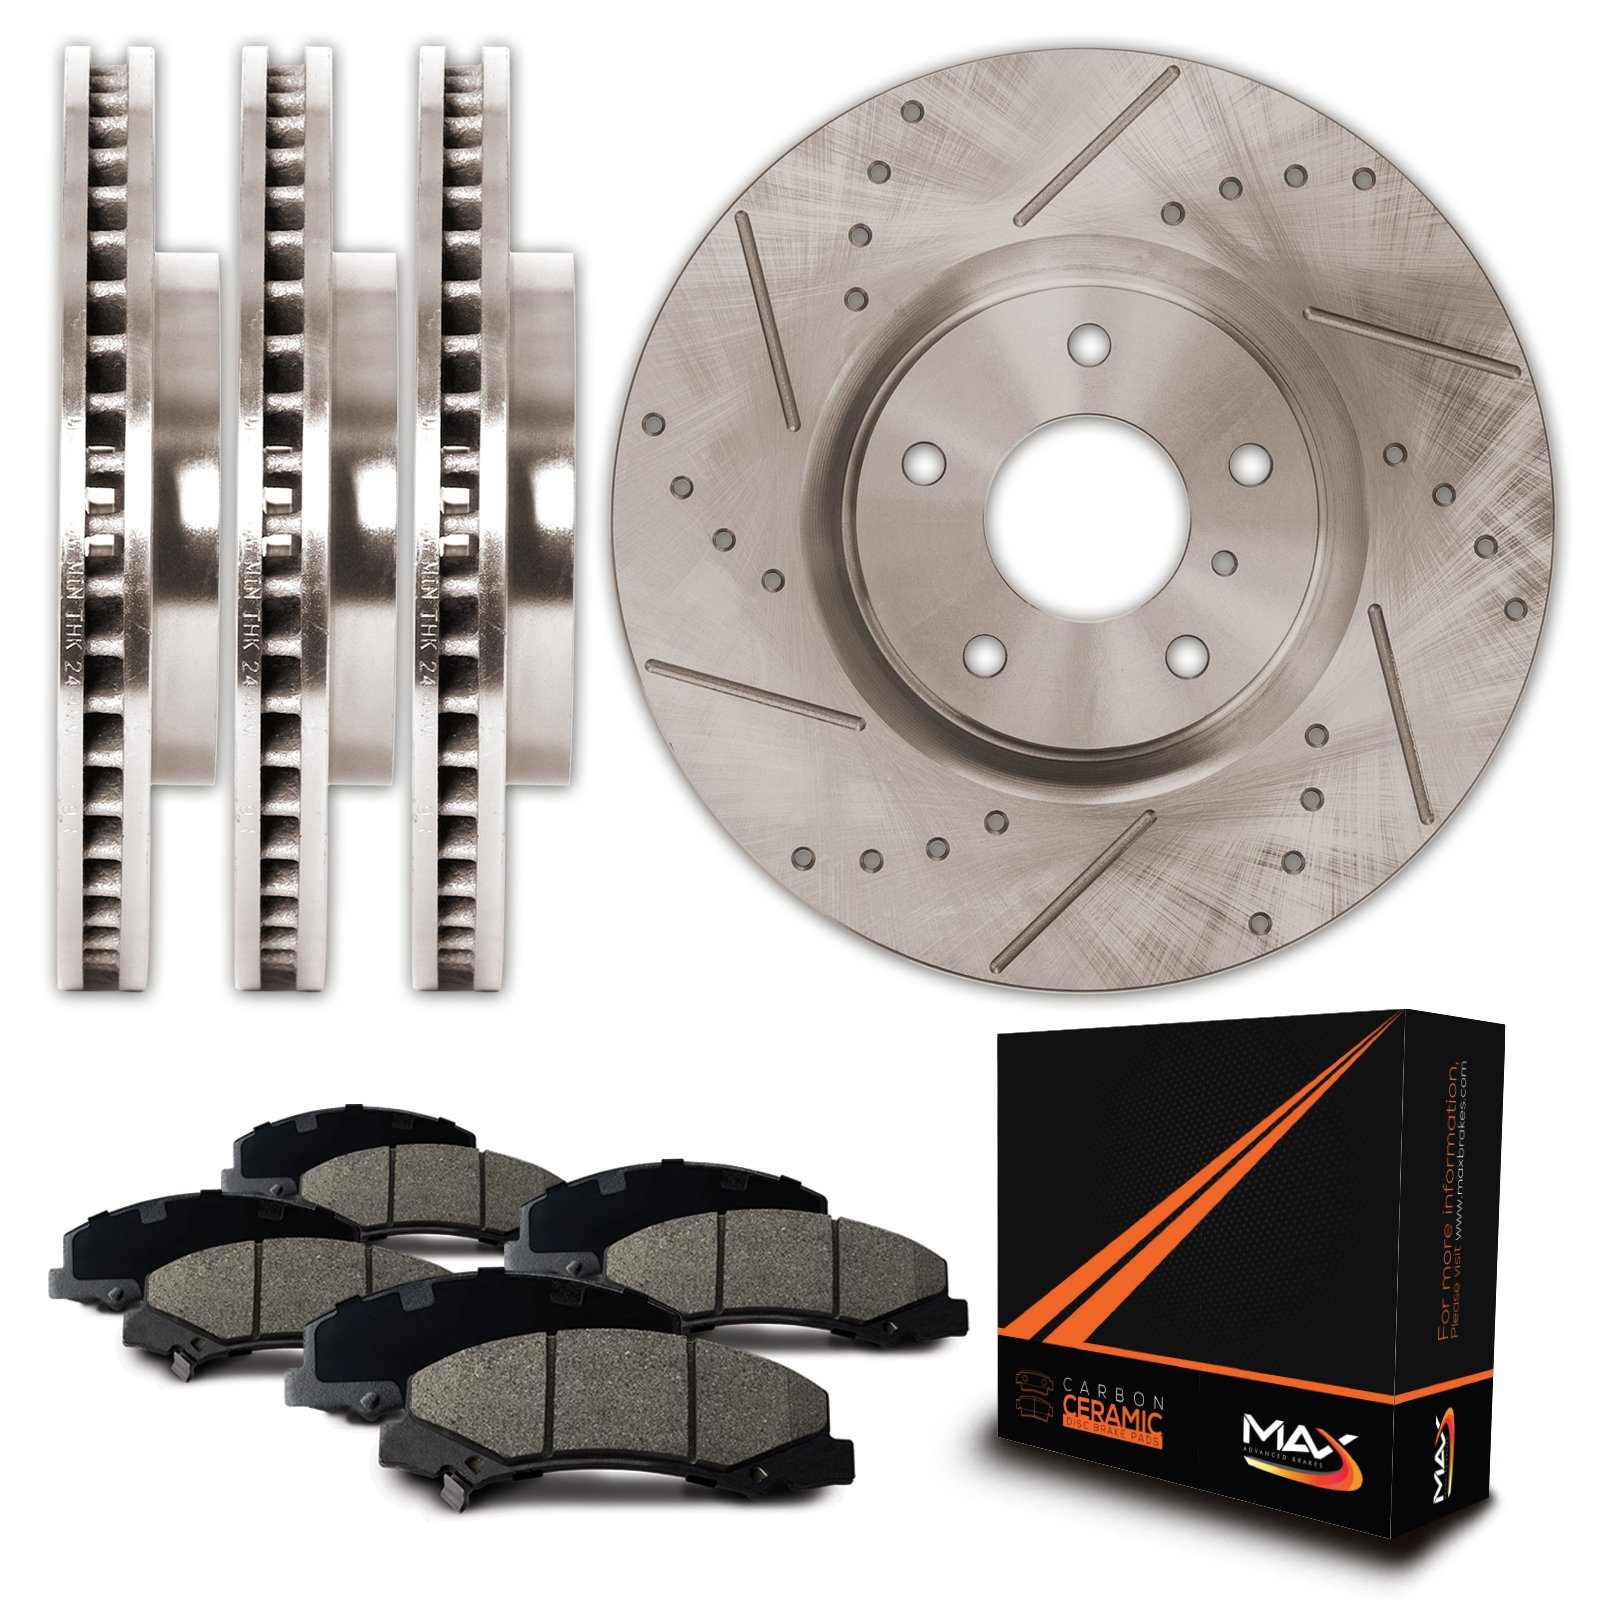 Max KT009233 Front + Rear Premium Slotted & Drilled Rotors and Ceramic Pads Combo Brake Kit (F: 320mm / R: 308mm) G25 G35